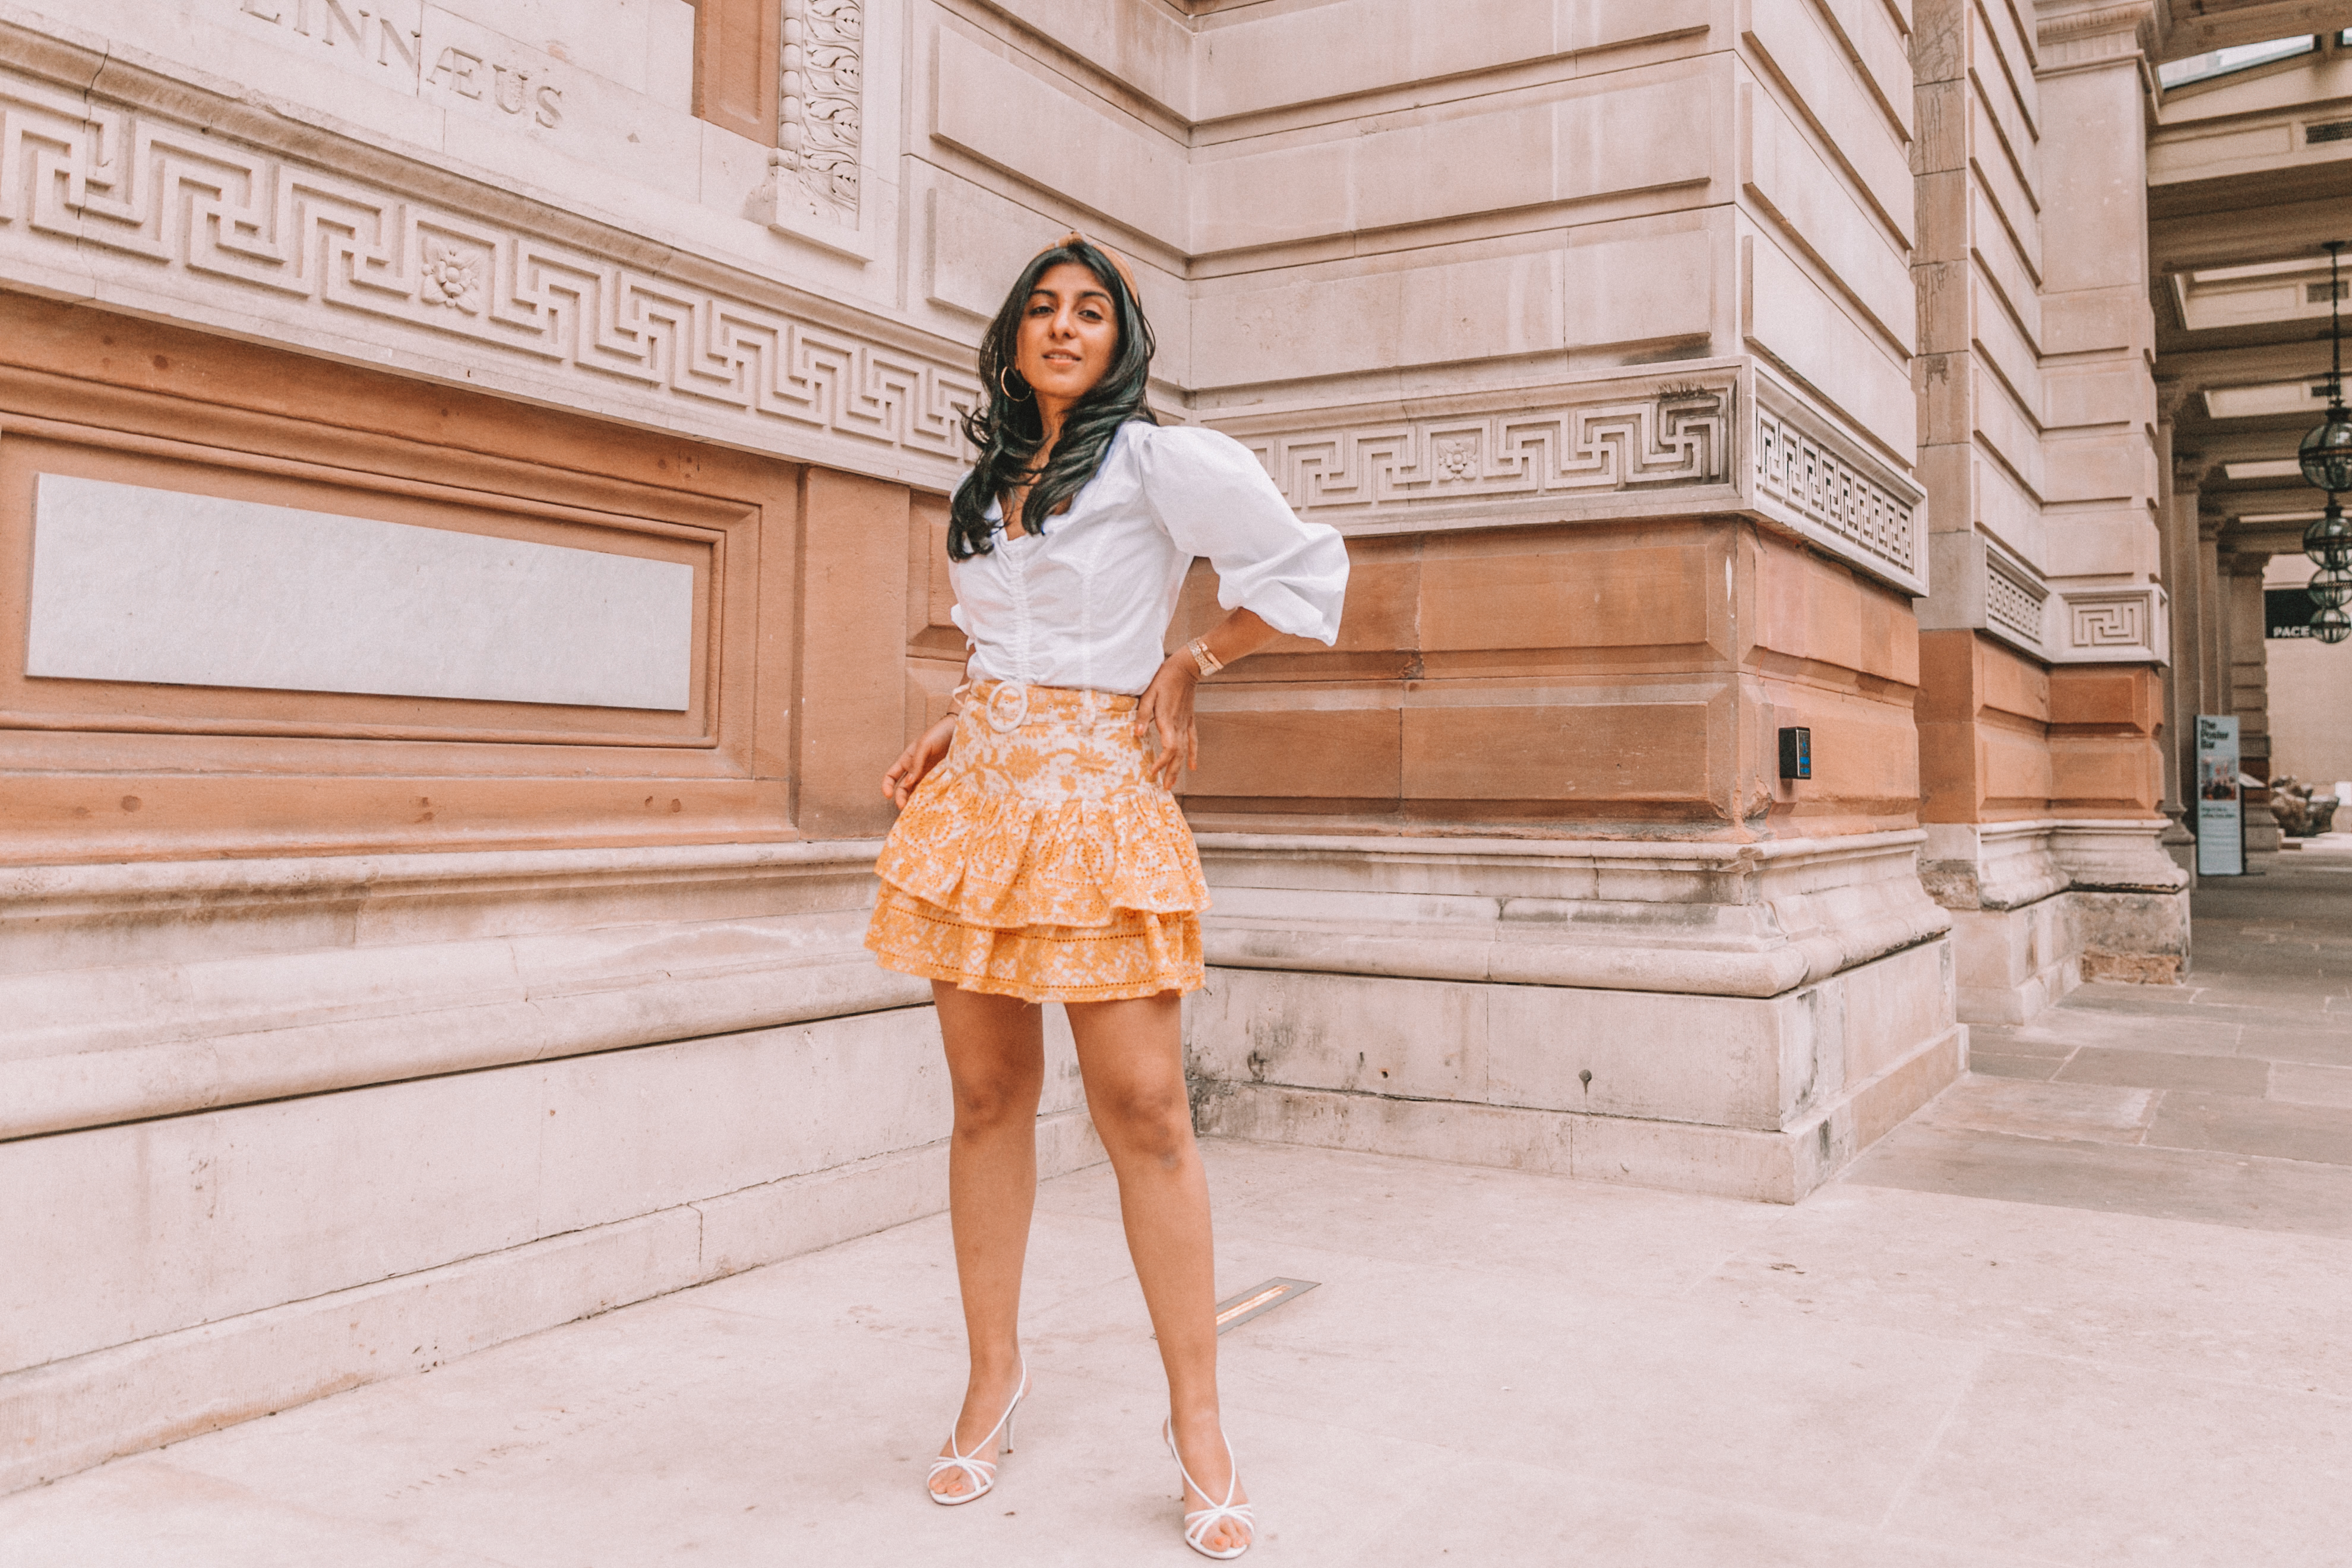 c79c4a3dd 10 Mini Skirts That Will Make You Look Ultra Luxe This Summer - The Silk  Sneaker